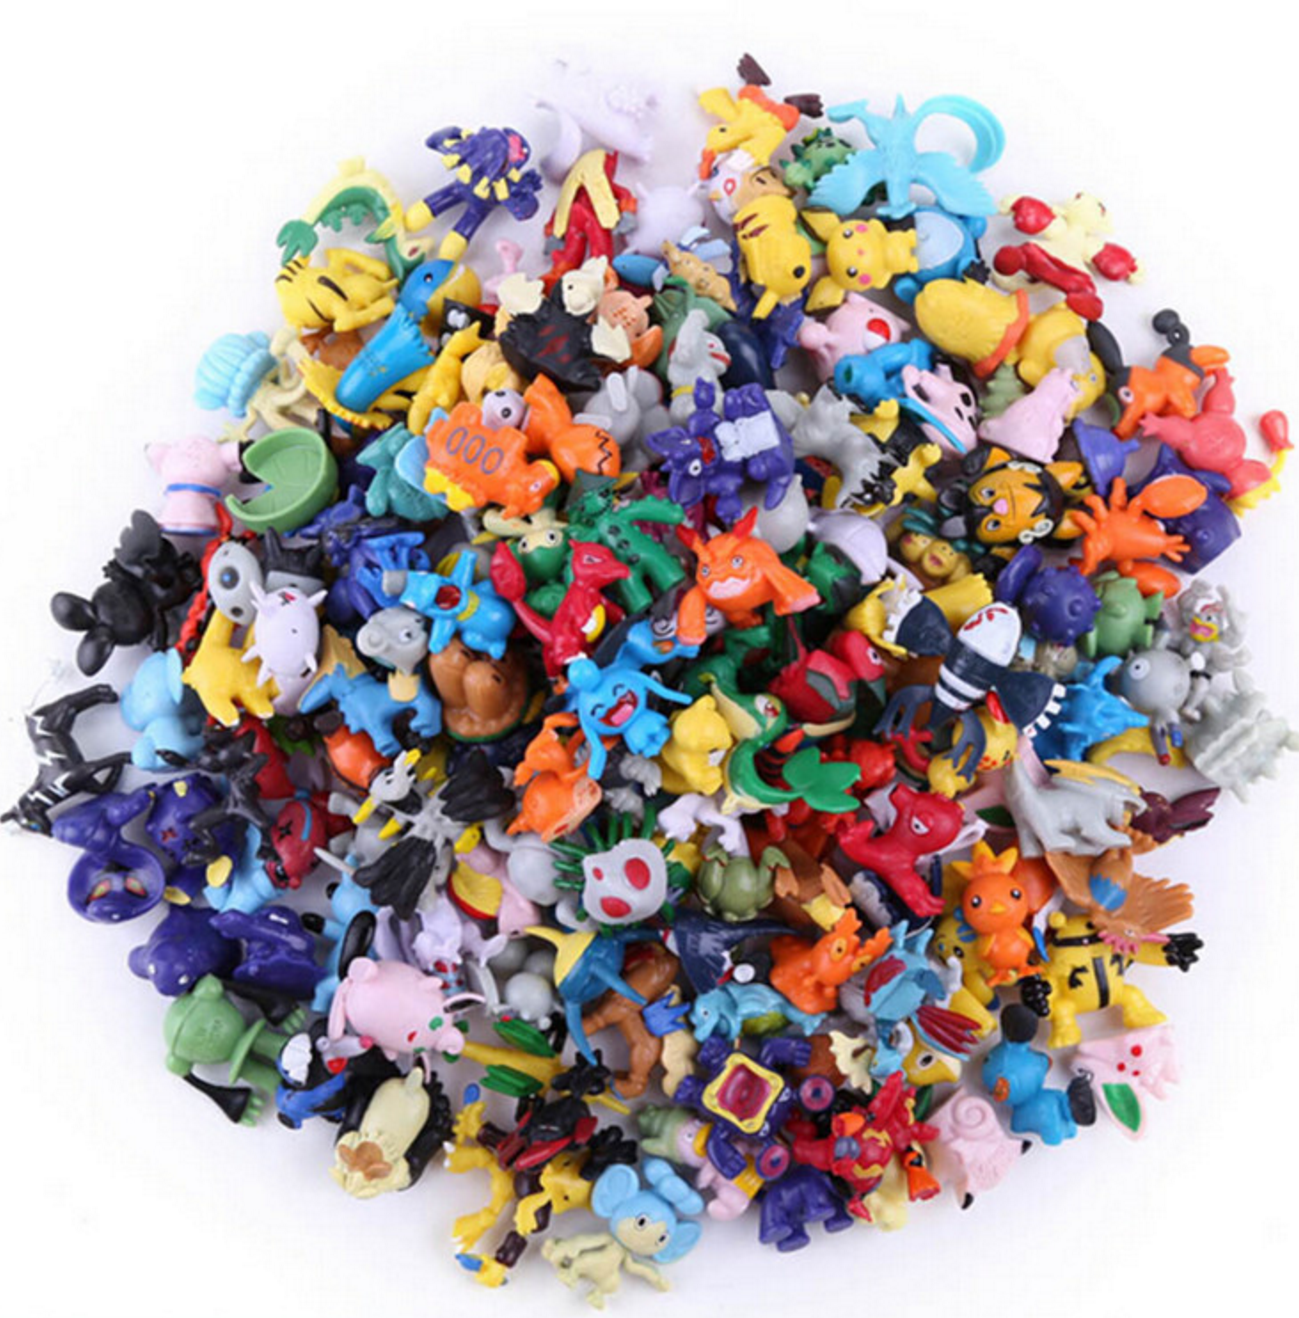 Image 3 - 20/pcs Action & Toy Figures 7cm balls +20pcs Free Random Mini Figures Inside Anime Action & Toy Figures for Children-in Action & Toy Figures from Toys & Hobbies